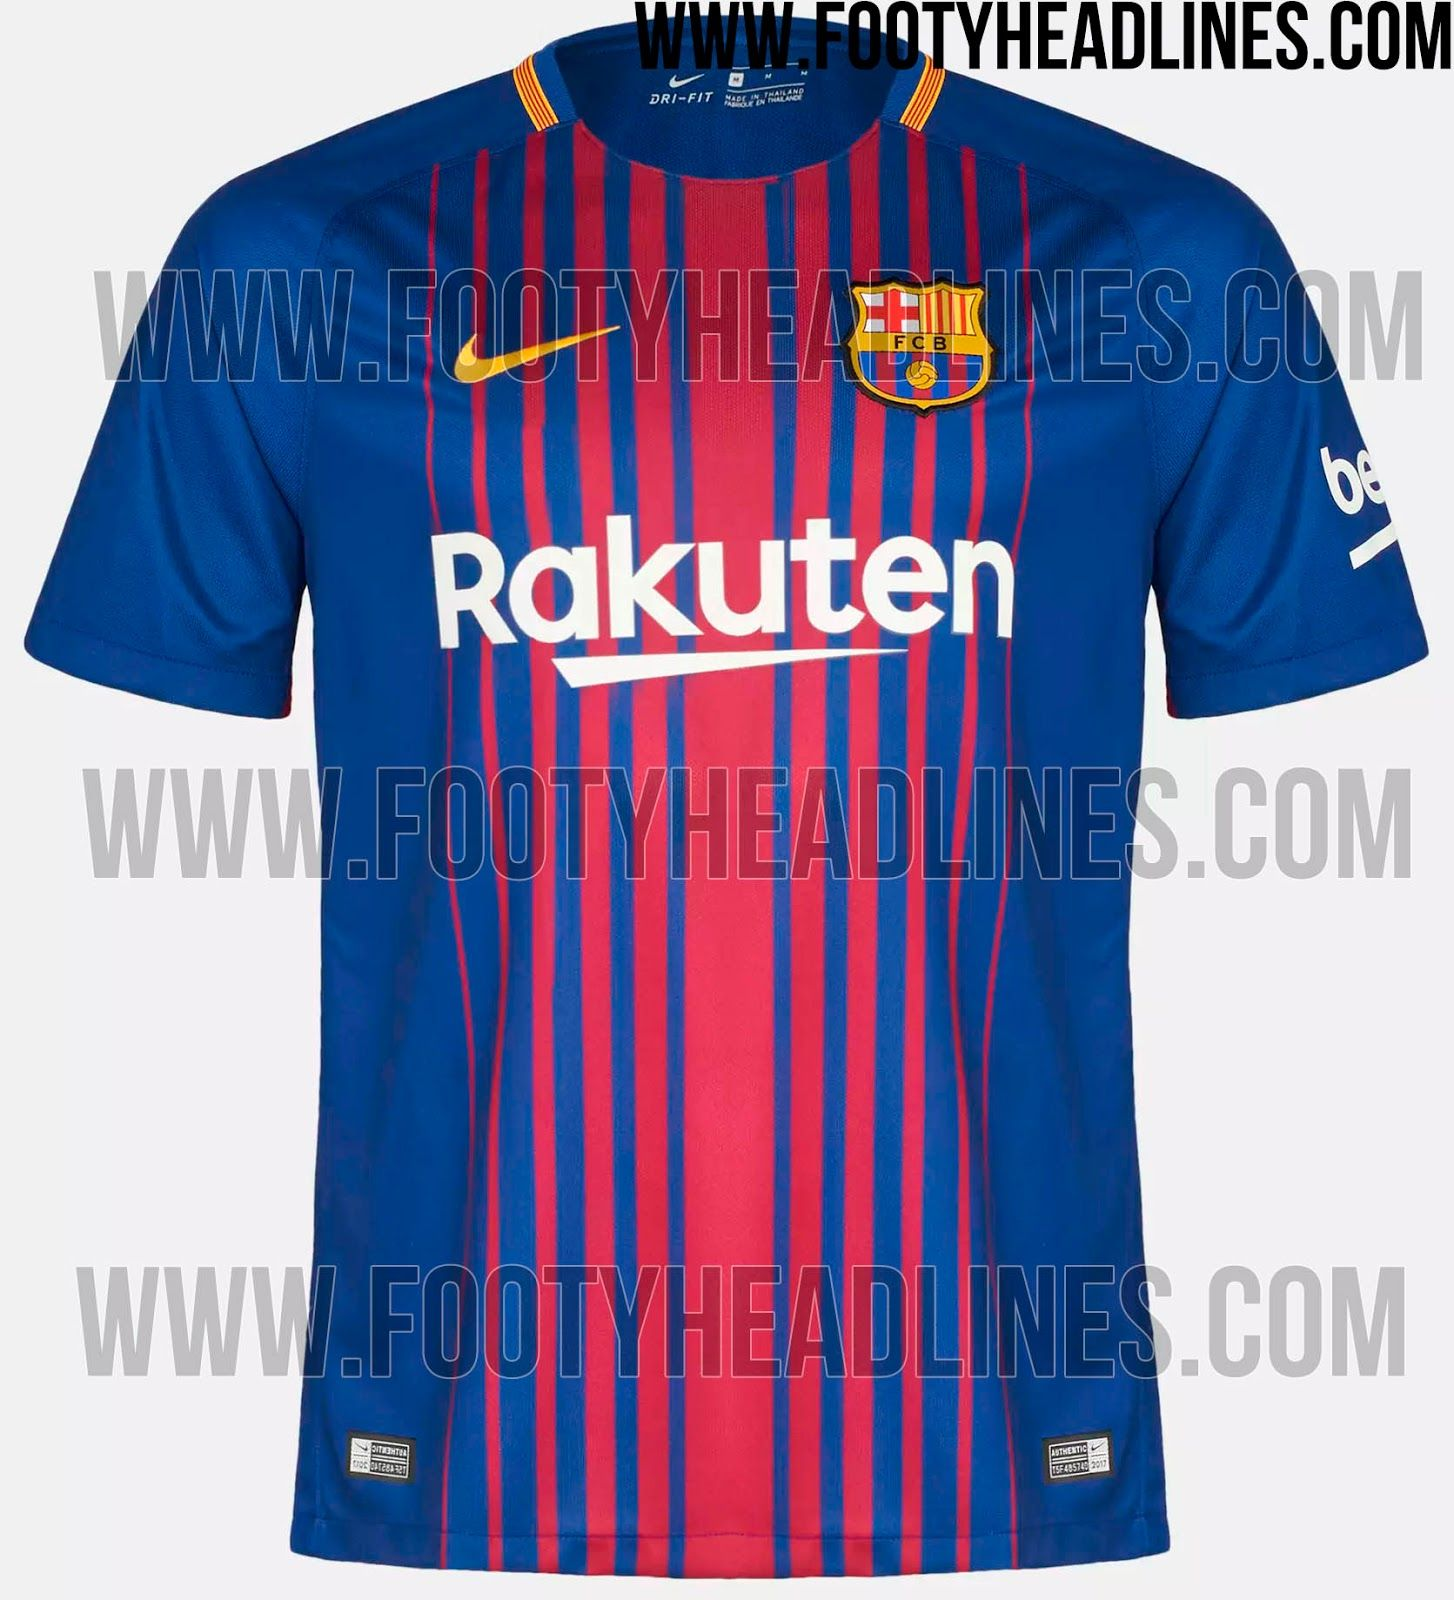 94397deb68d ... Soccer Jersey(Leaked Version) The Barcelona home kit introduces an  outstanding gradient stripe design. Made by Nike and featuring ...